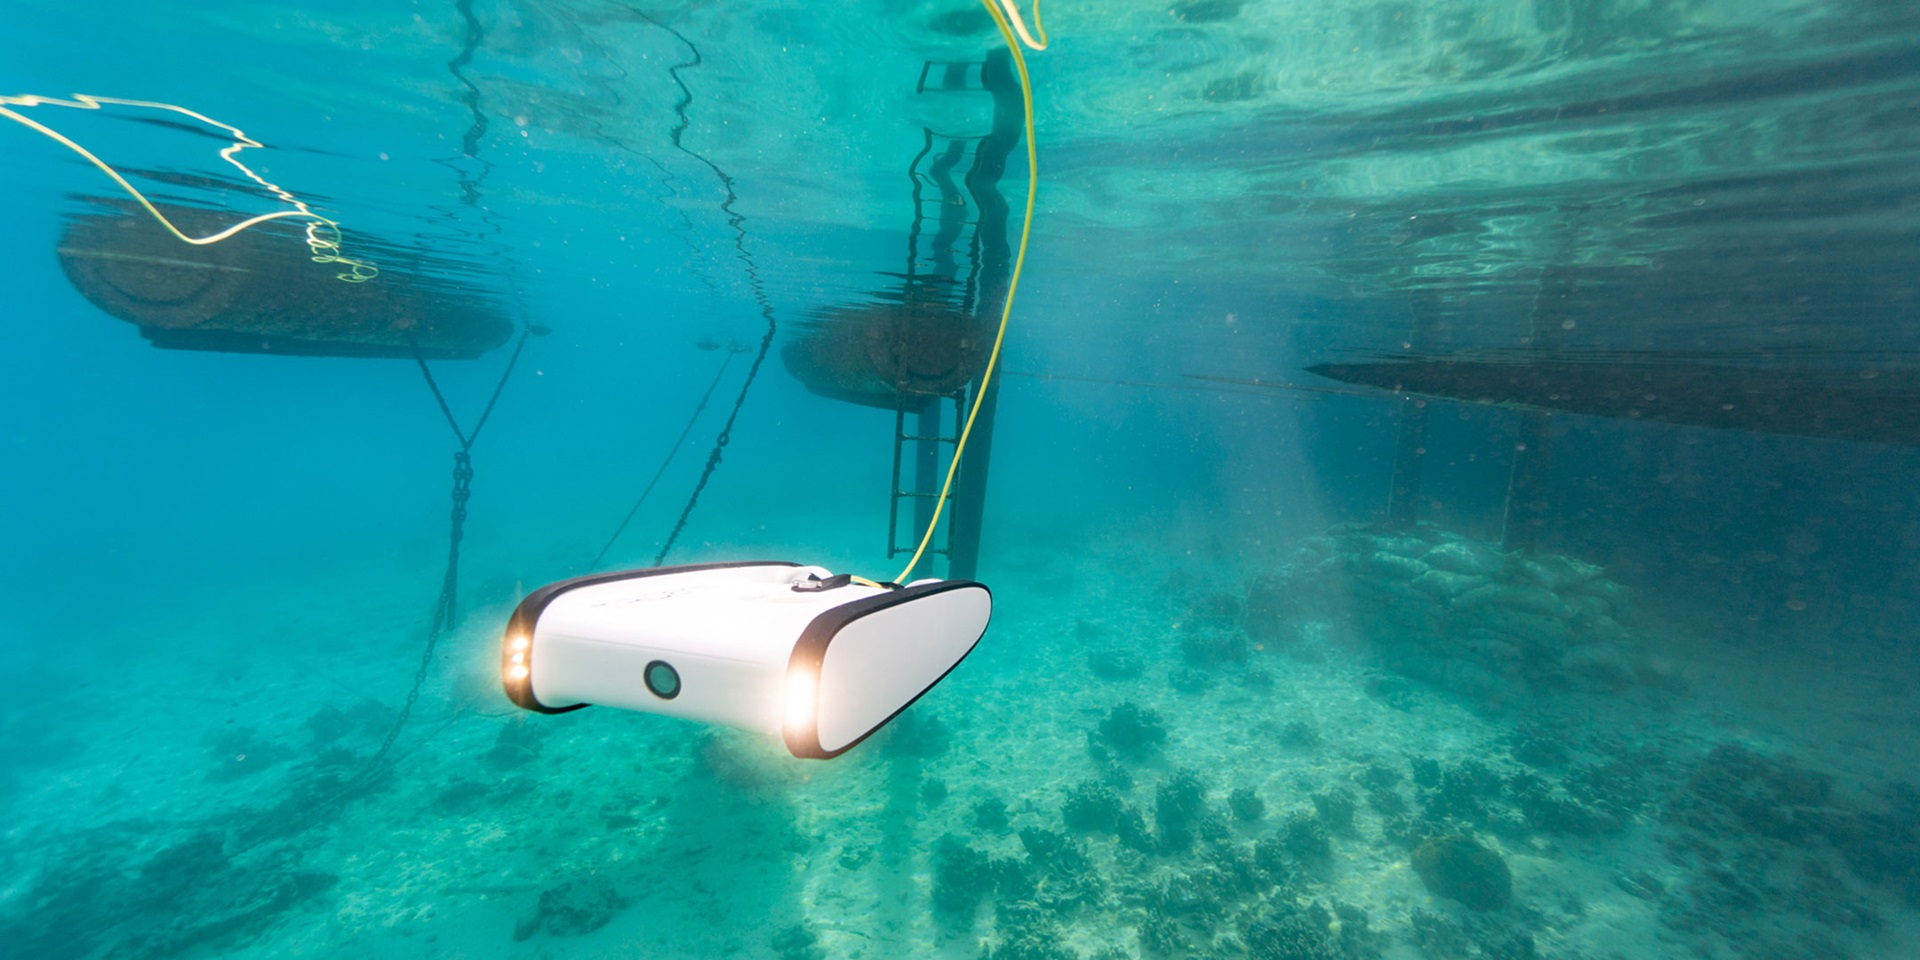 Underwater drone in action